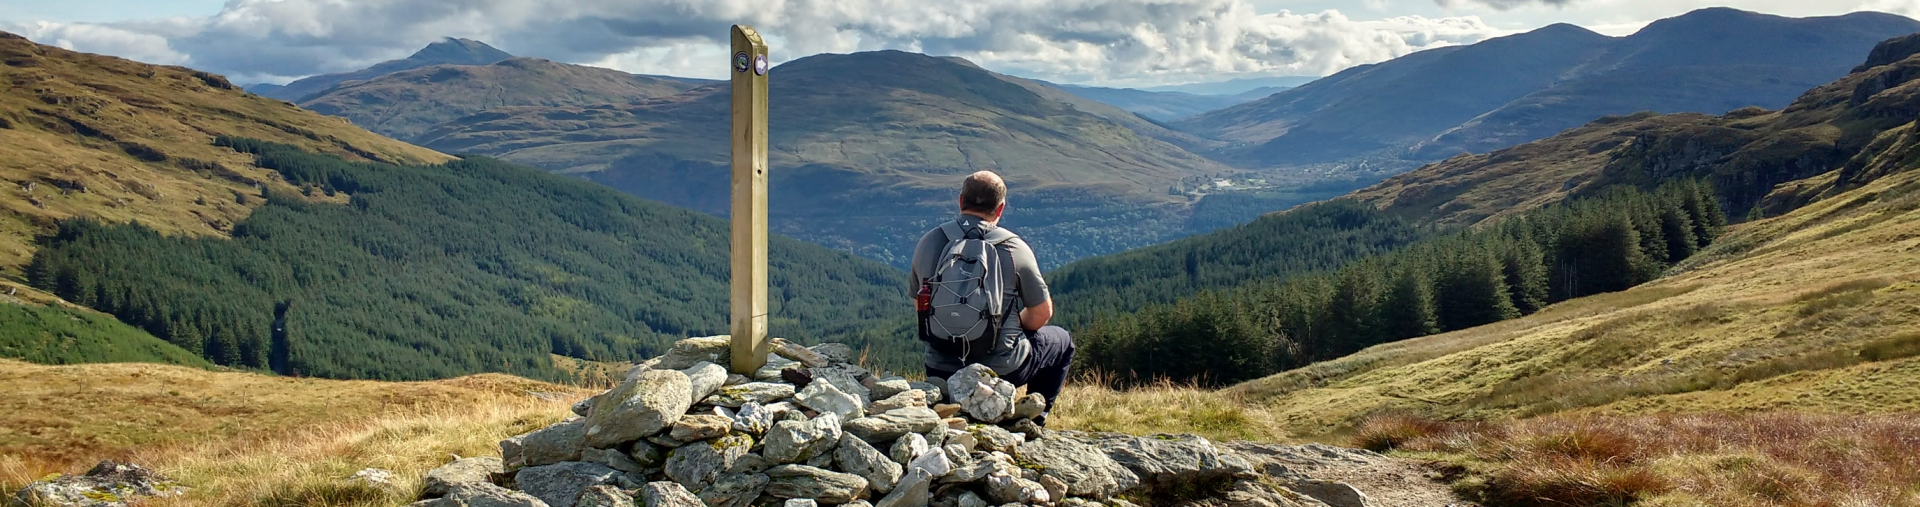 A walker sits at a waymarker overlooking a forested valley - tranquil holidays with corporate discounts